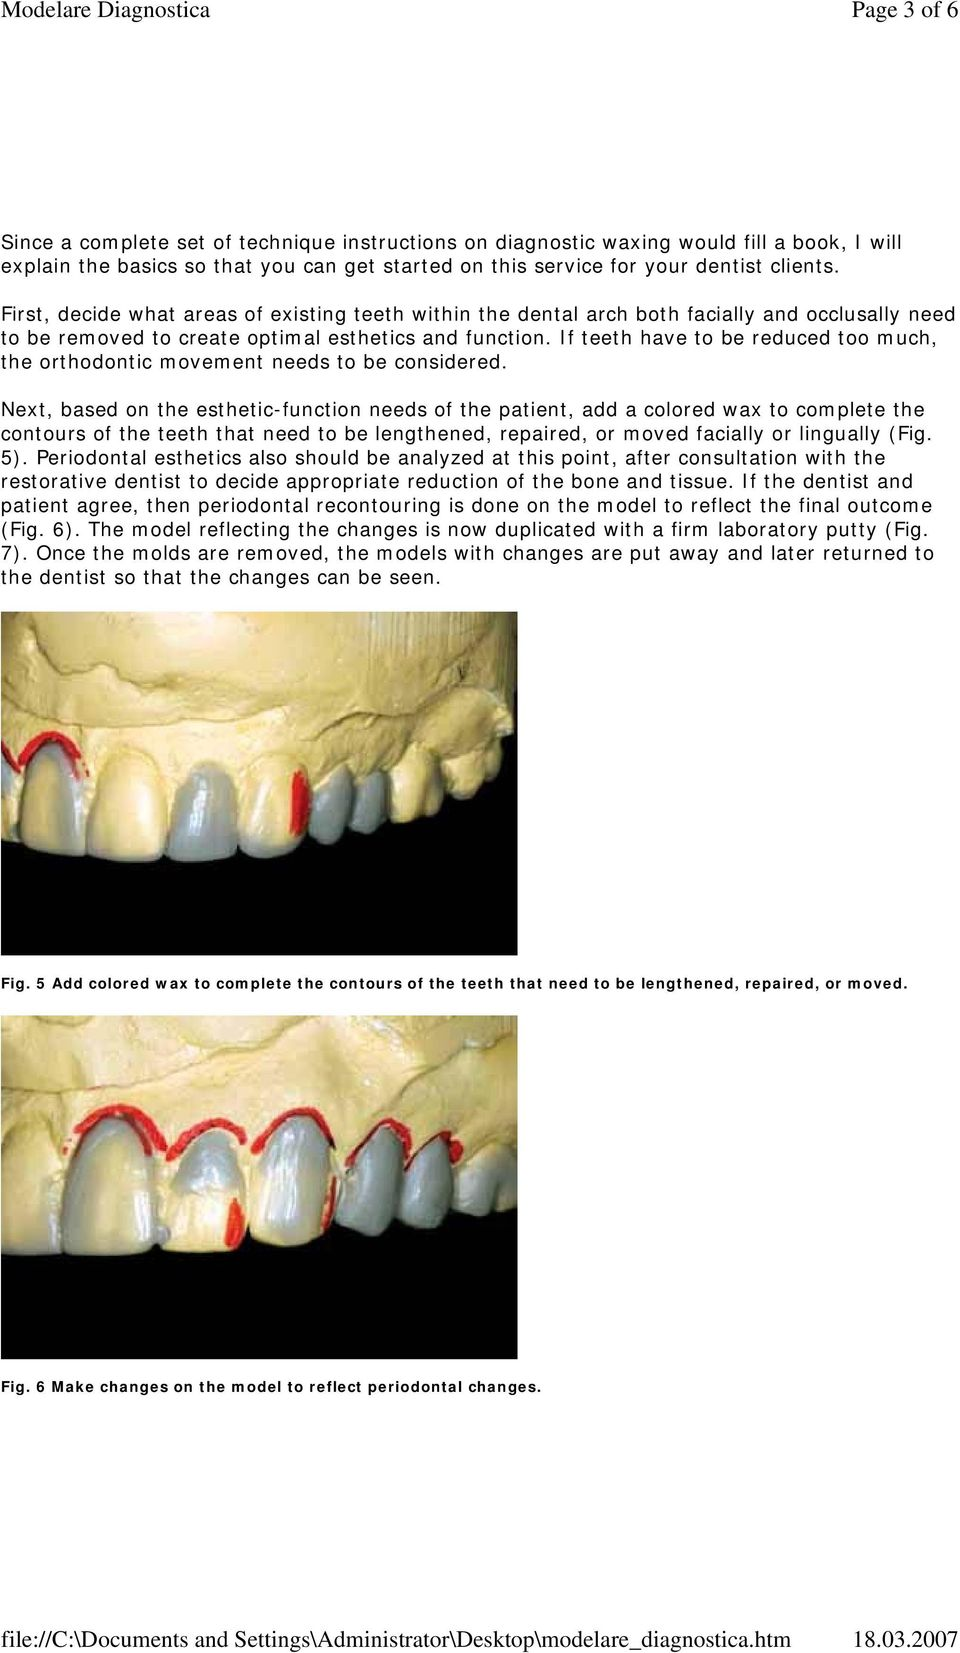 If teeth have to be reduced too much, the orthodontic movement needs to be considered.